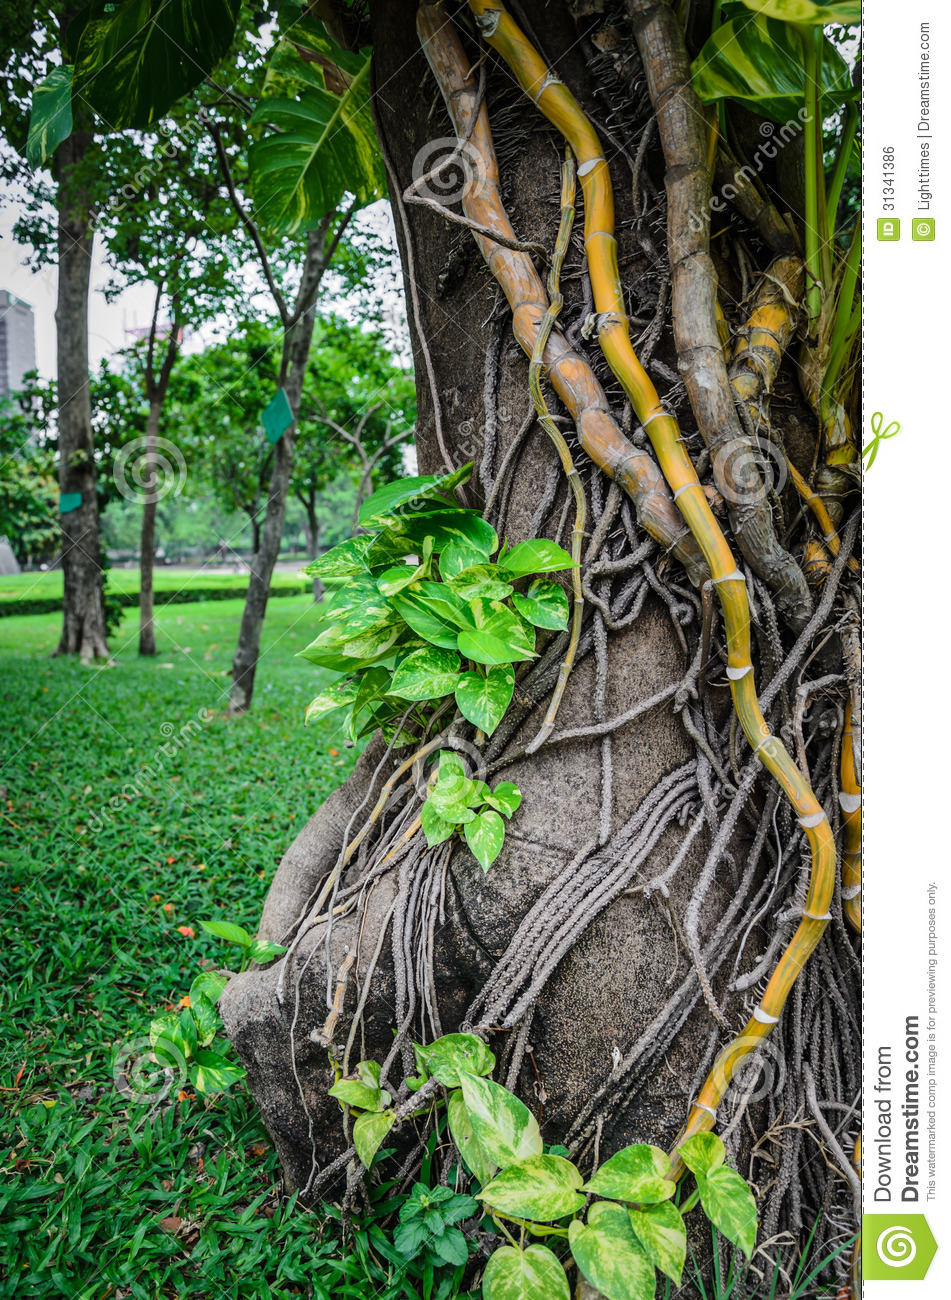 Liana Plant Creeping Royalty Free Stock Image - Image: 31341386